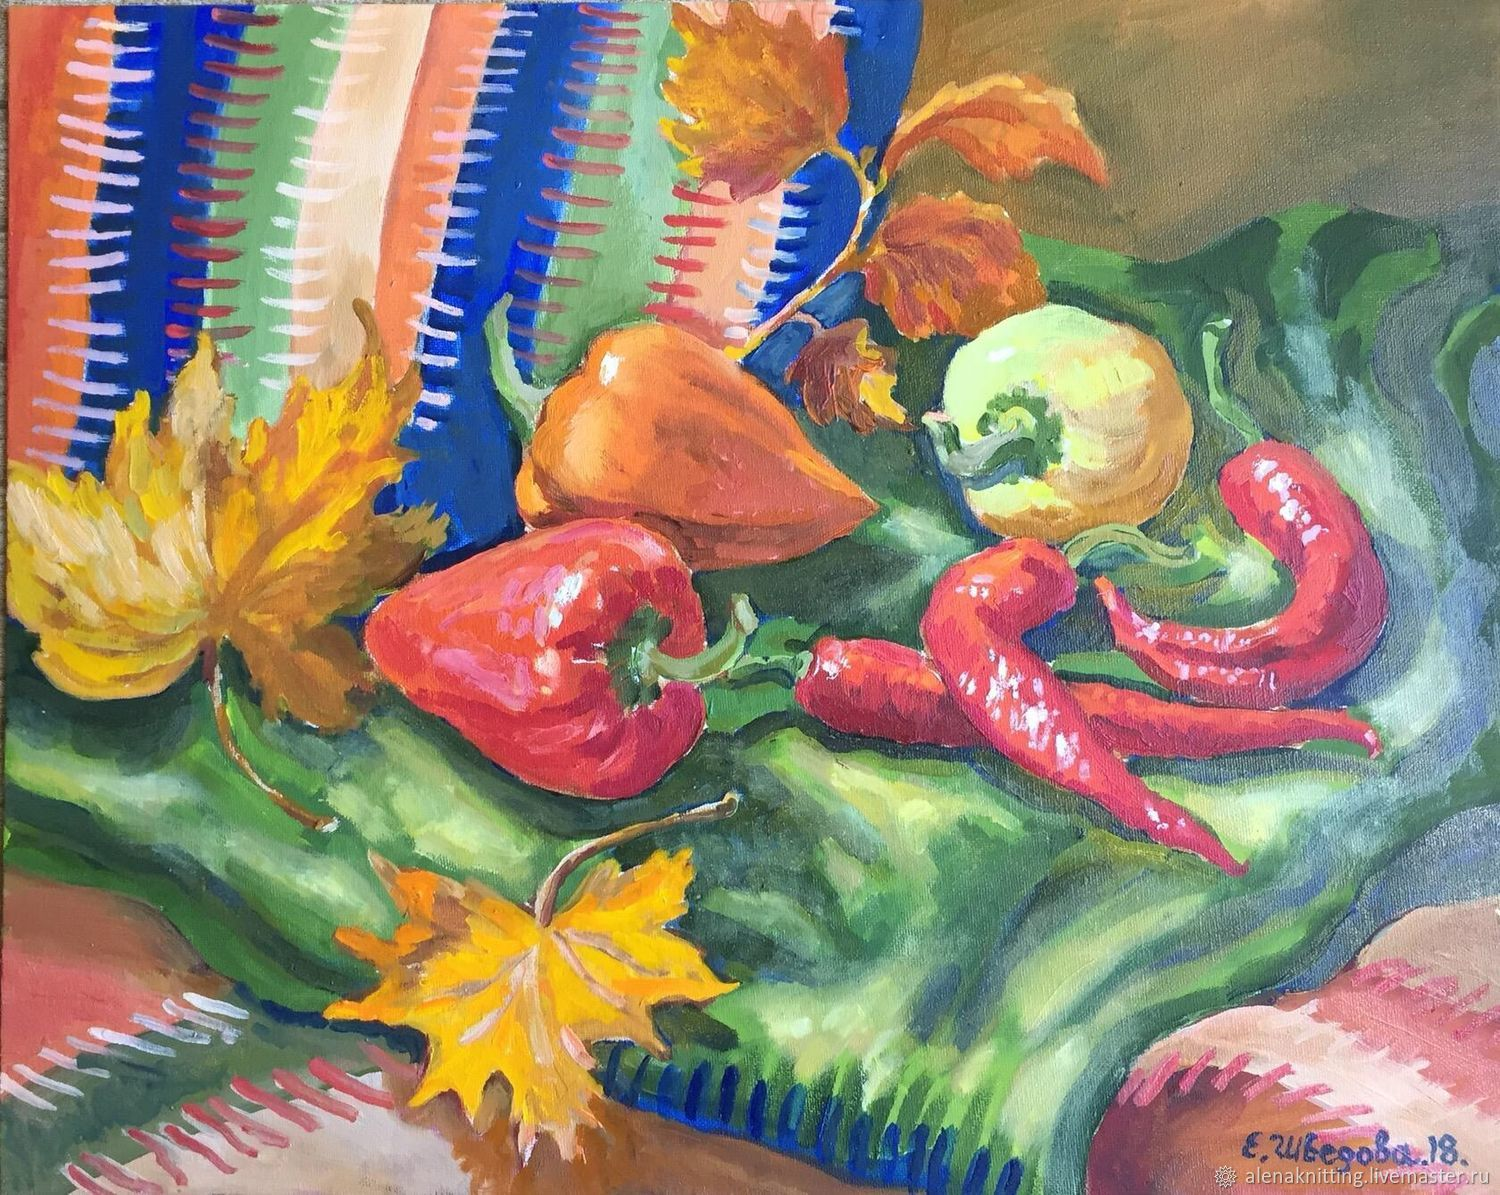 Oil painting 'hot pepper', Pictures, Moscow,  Фото №1